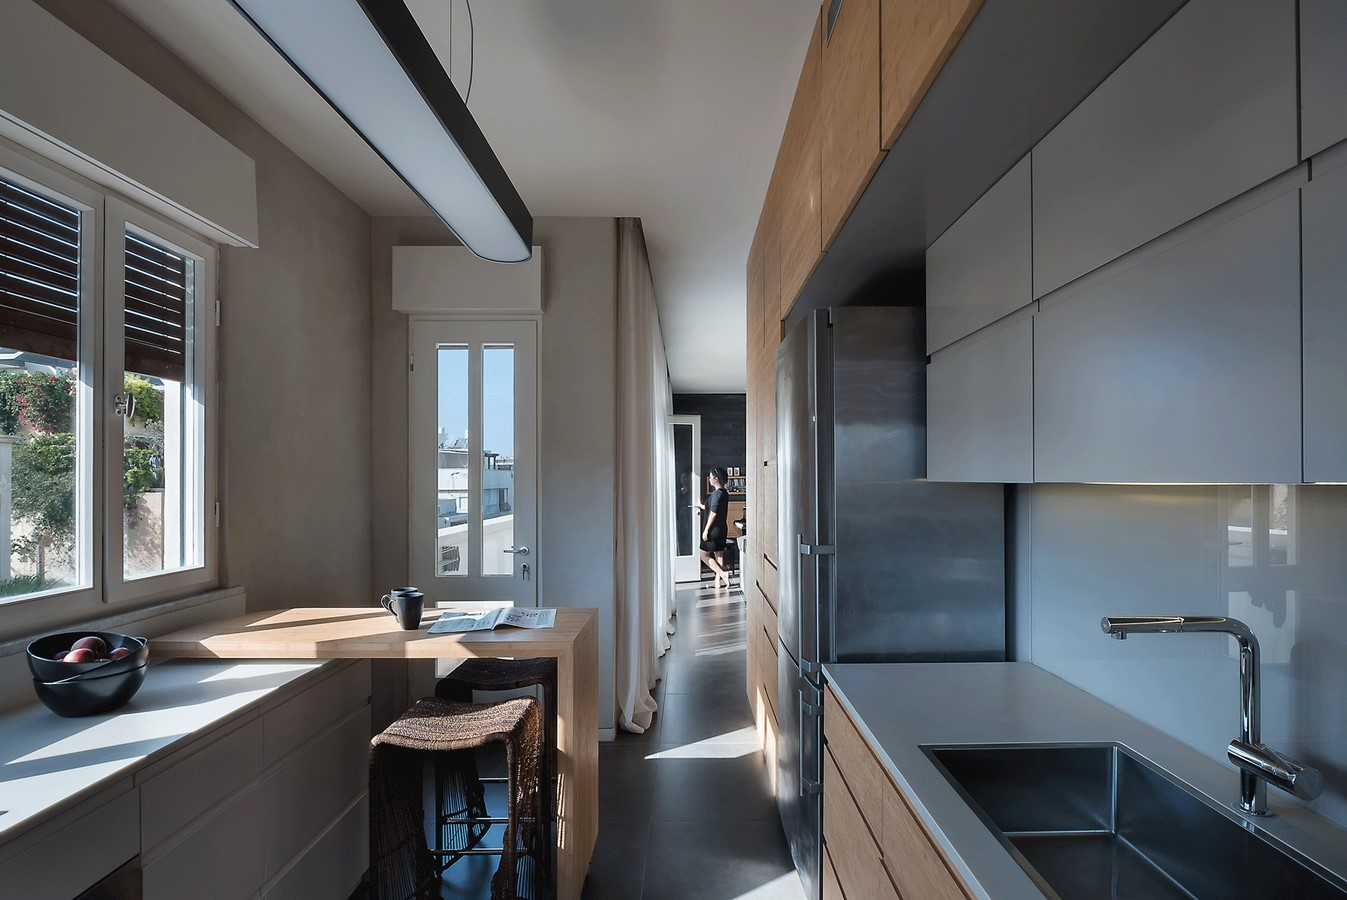 The Pianist's Home by XS Studio for compact design - Sheet1